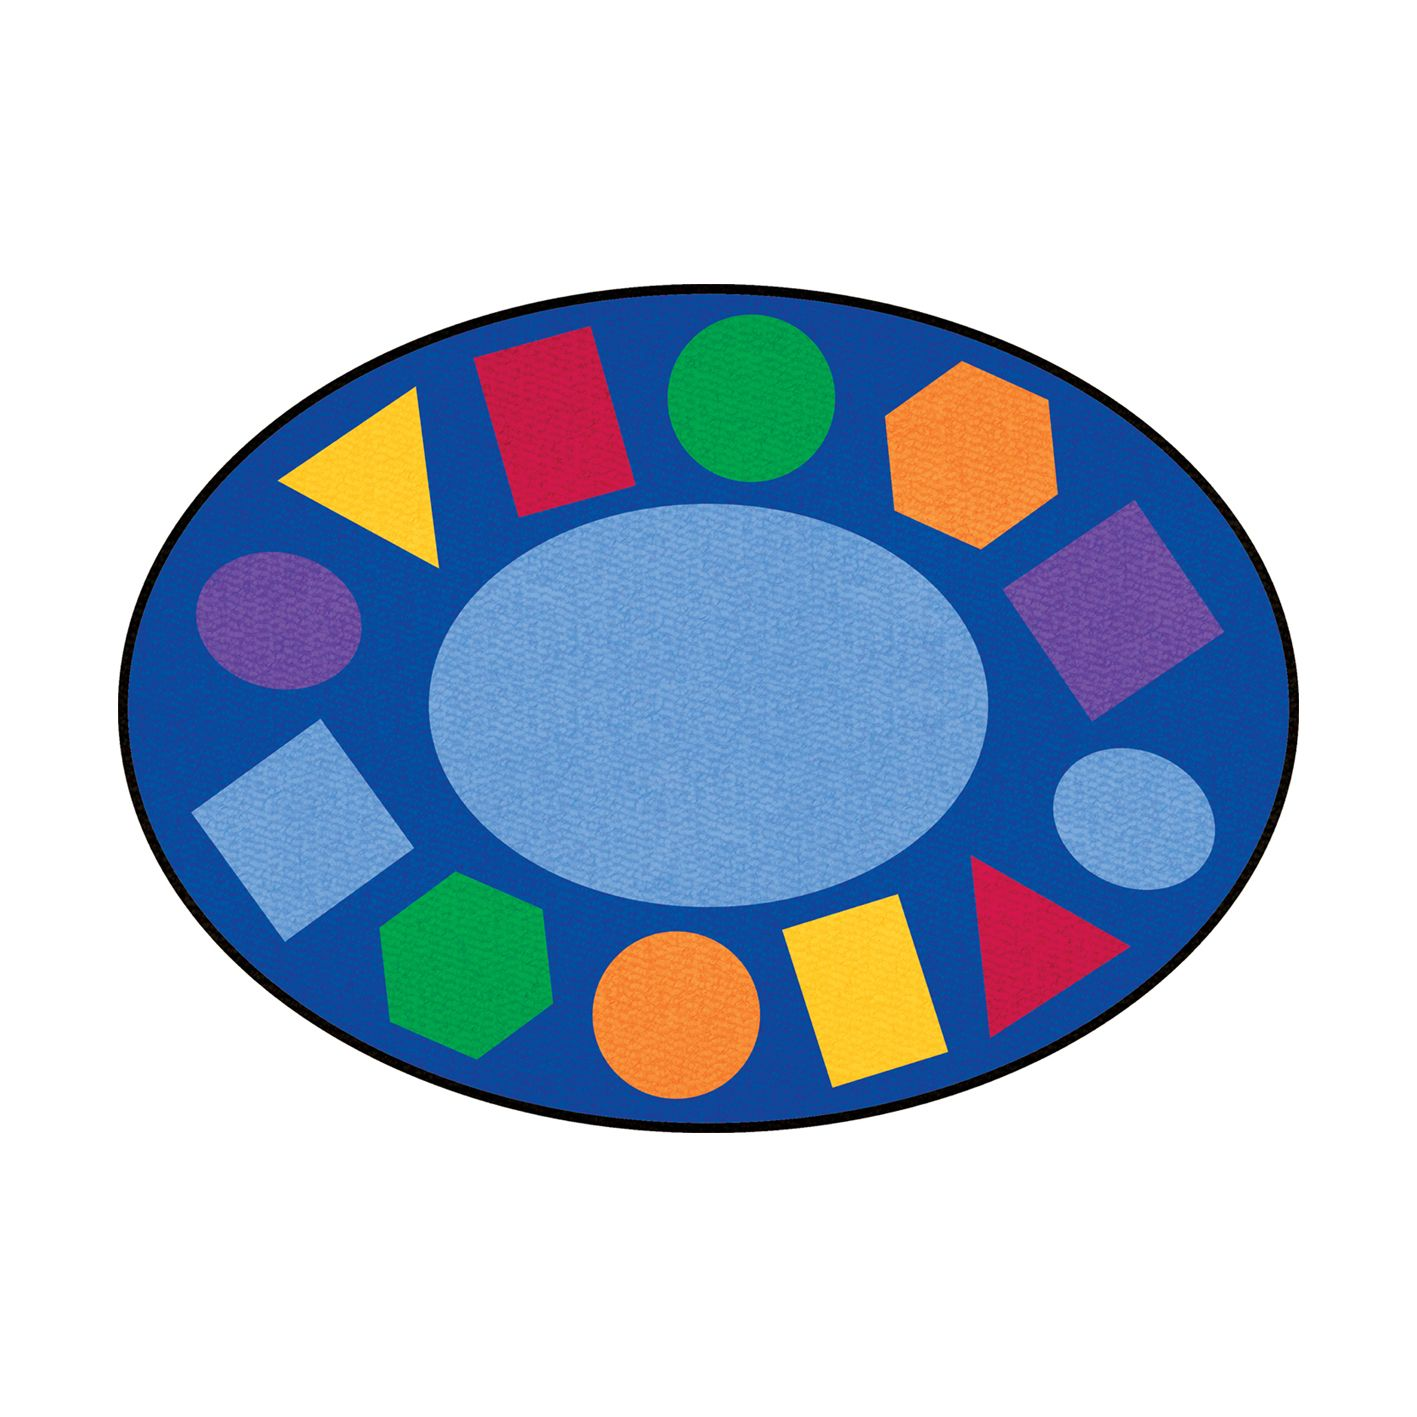 Rug clipart round mat. Geometric learning classroom carpets